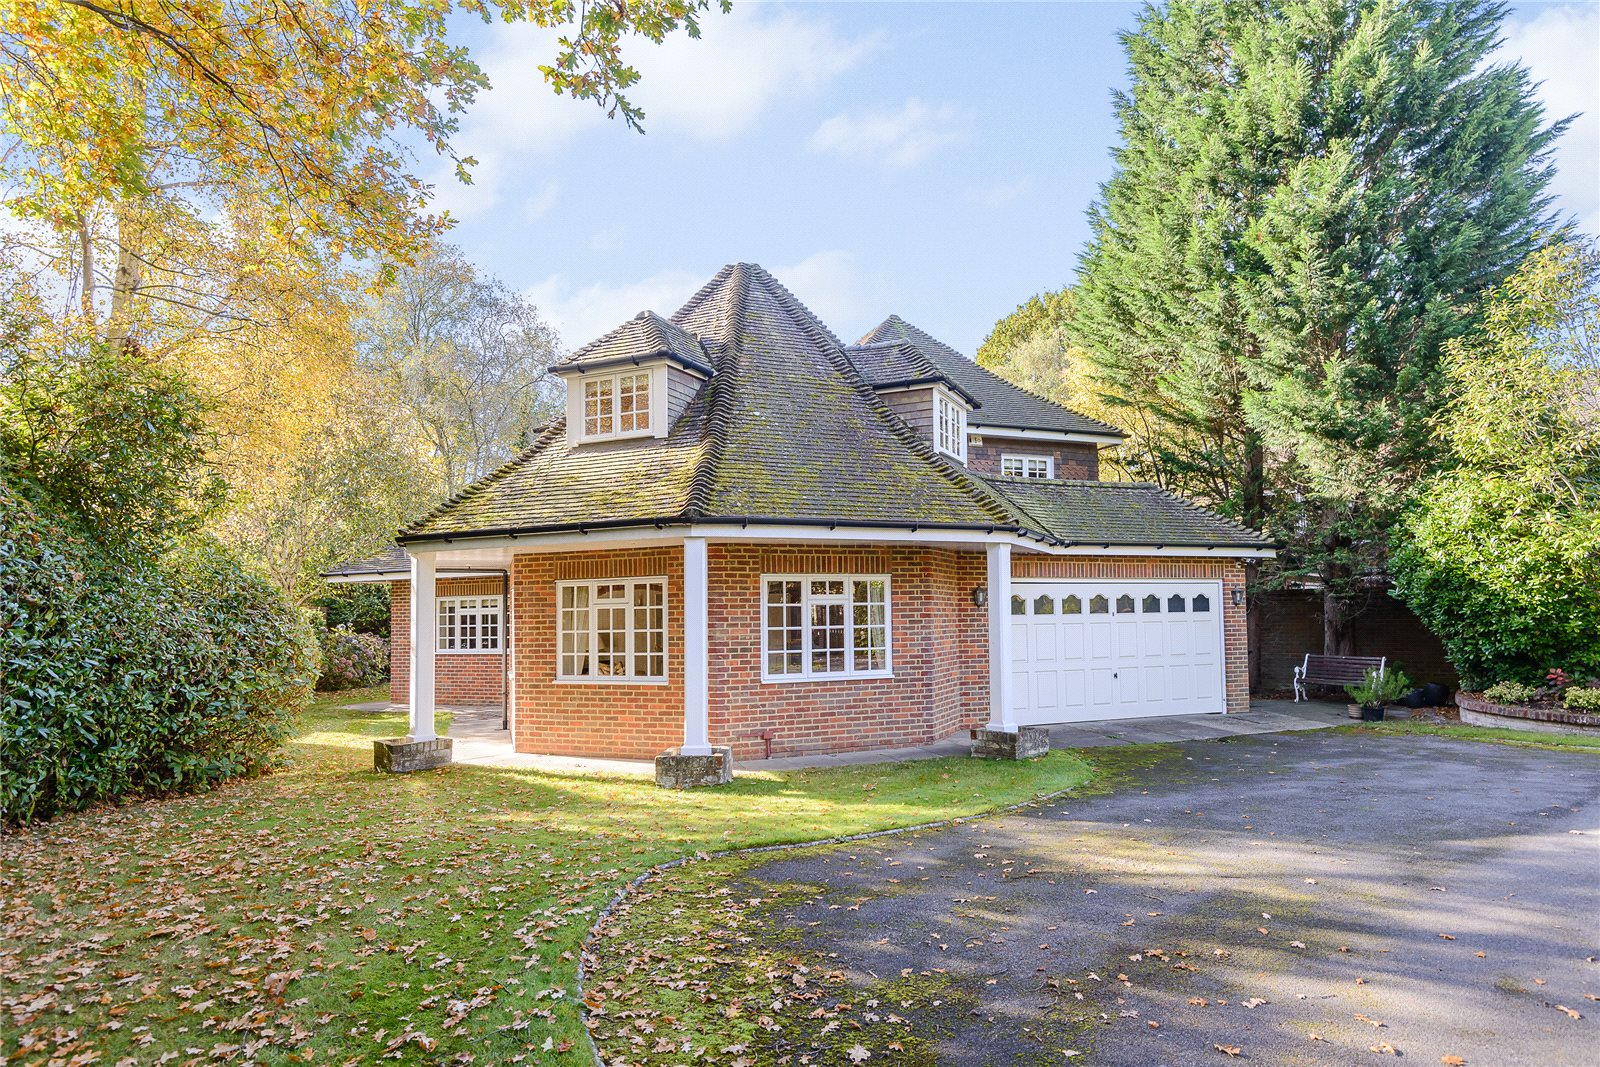 Maison unifamiliale pour l Vente à Dukes Wood Drive, Gerrards Cross, Buckinghamshire, SL9 Gerrards Cross, Angleterre